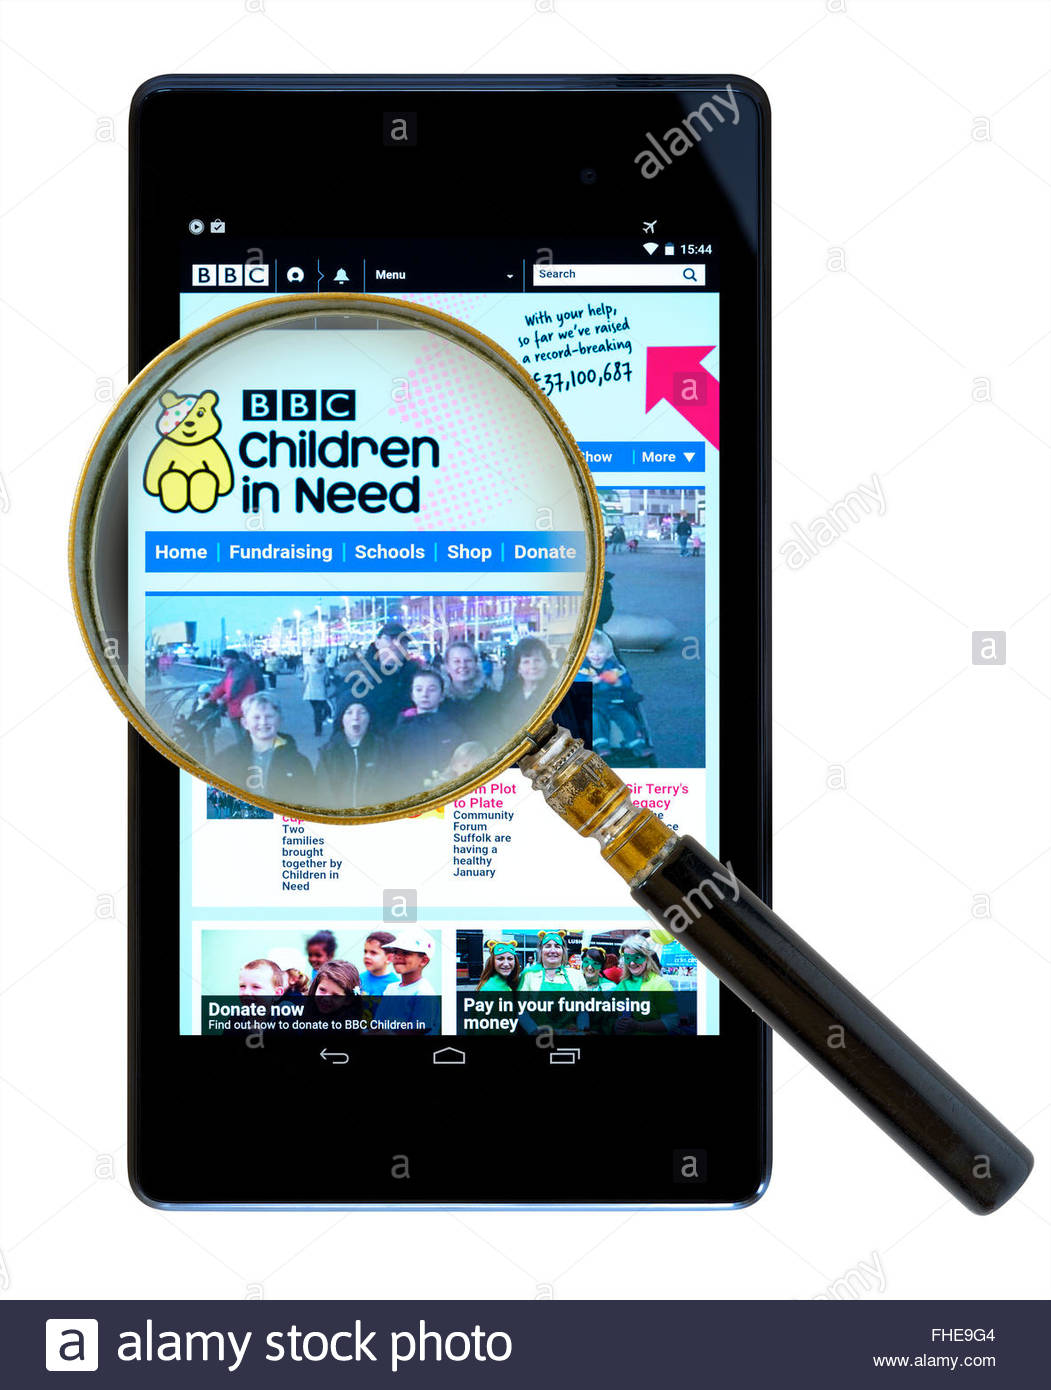 BBC Children In Need fundraising app on an android tablet PC, Dorset, England, UK - Stock Image